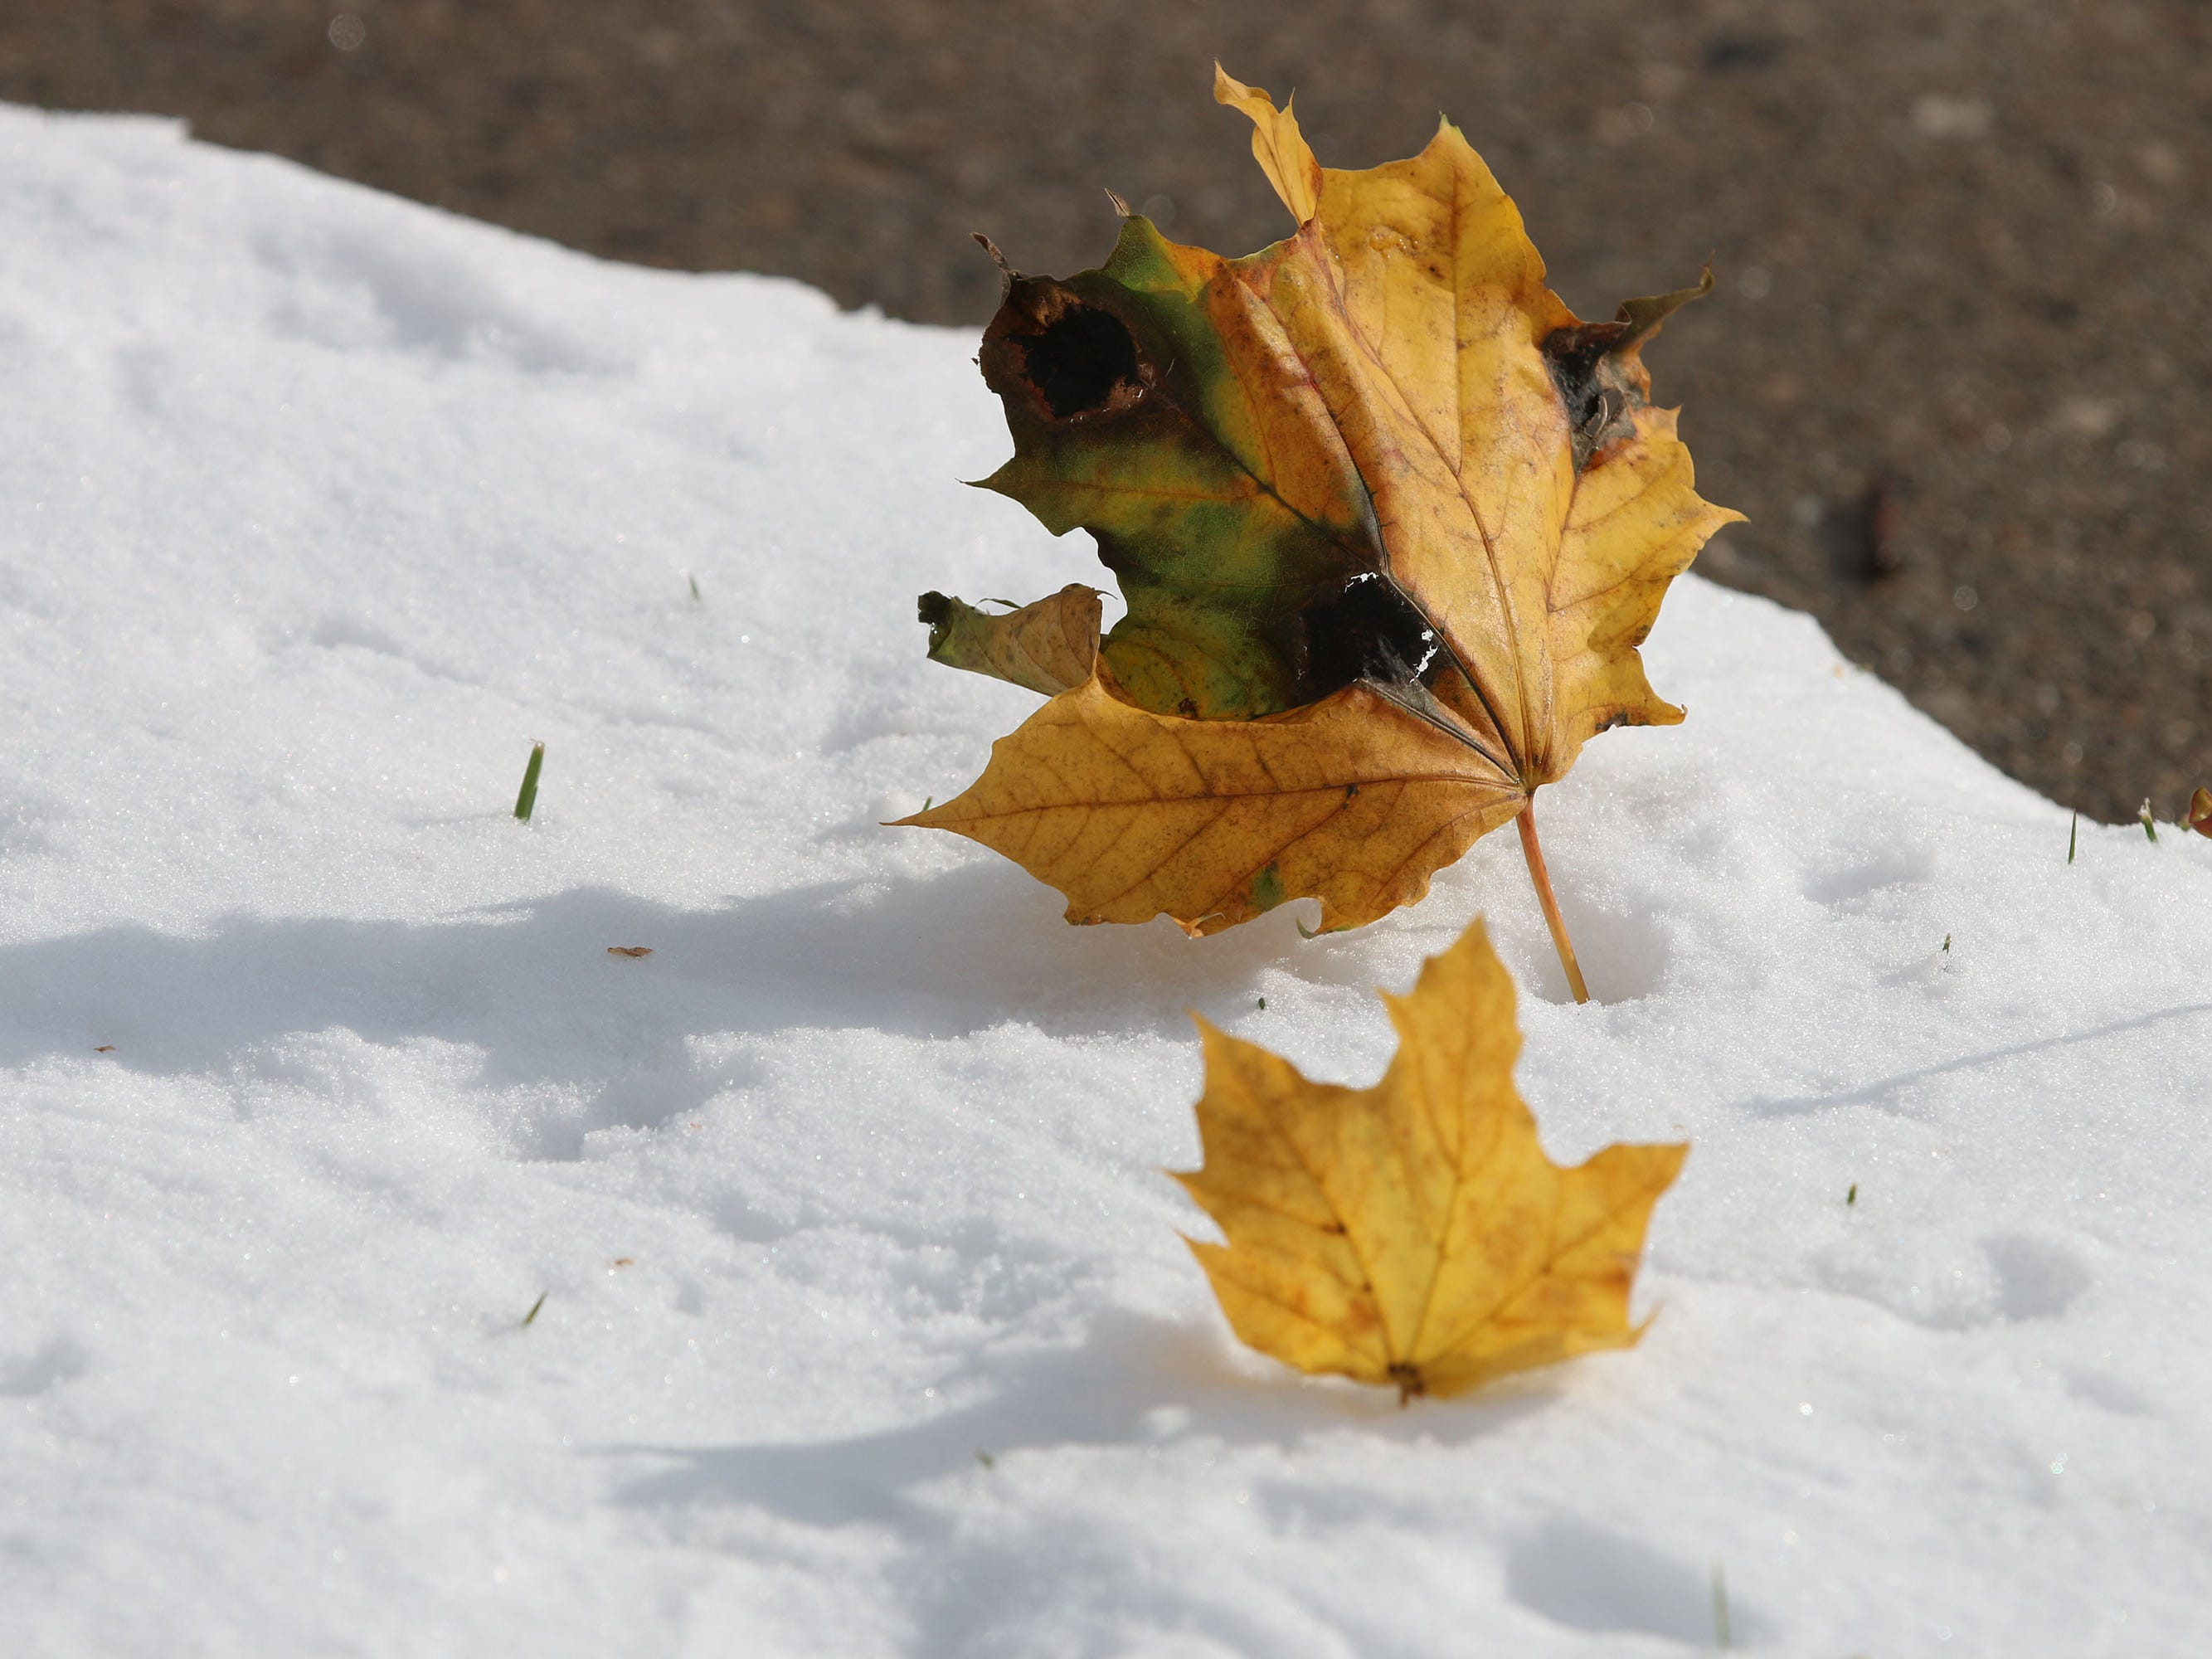 Leaves fall color contrasts with the purity of freshly fallen snow along Evans Avenue, Friday, November 9, 2018, in Sheboygan, Wis.